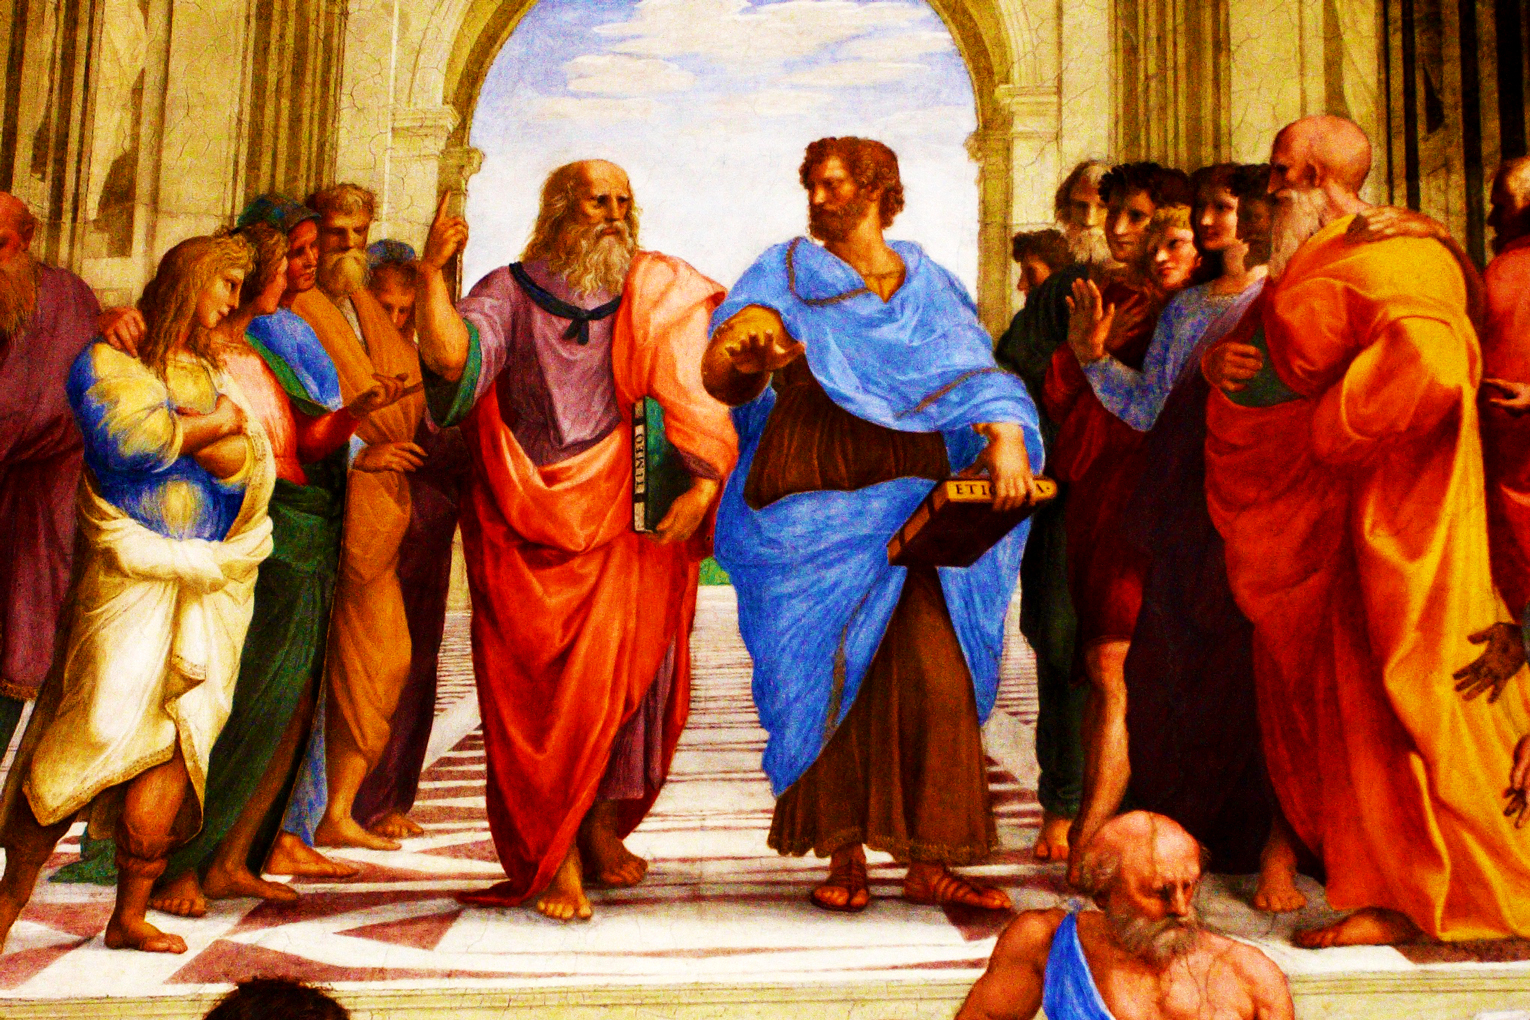 a comparison of the real life philosopher socrates to the religious jesus